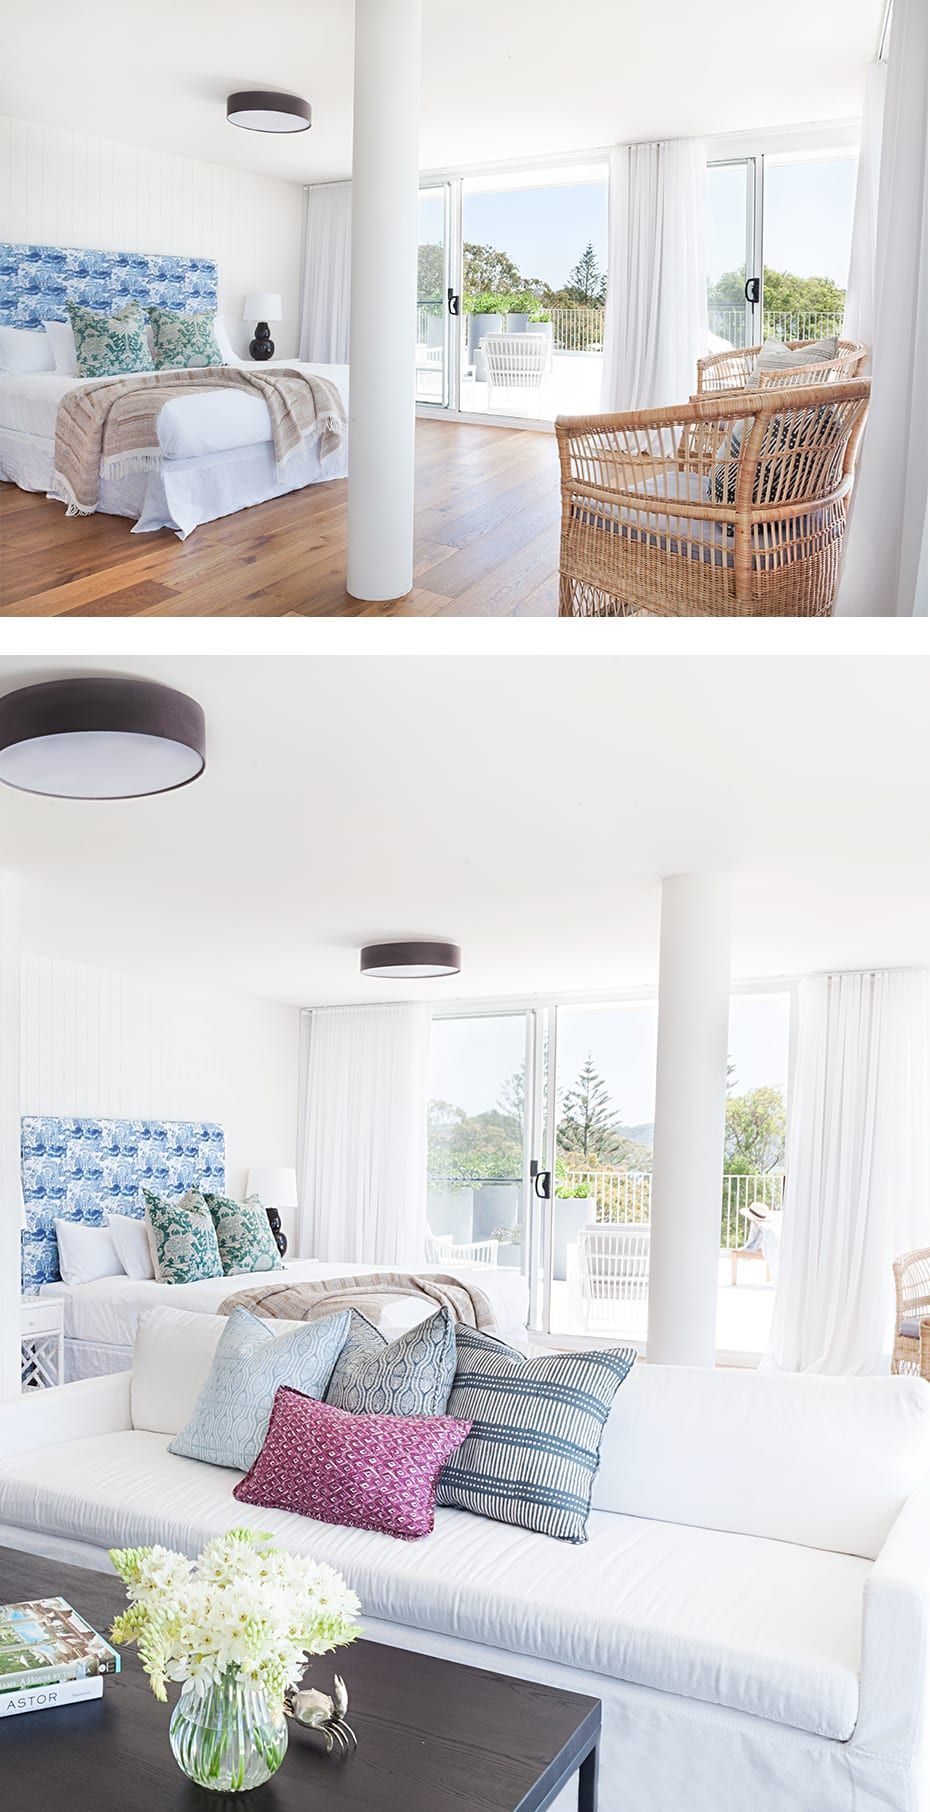 penthouse-room